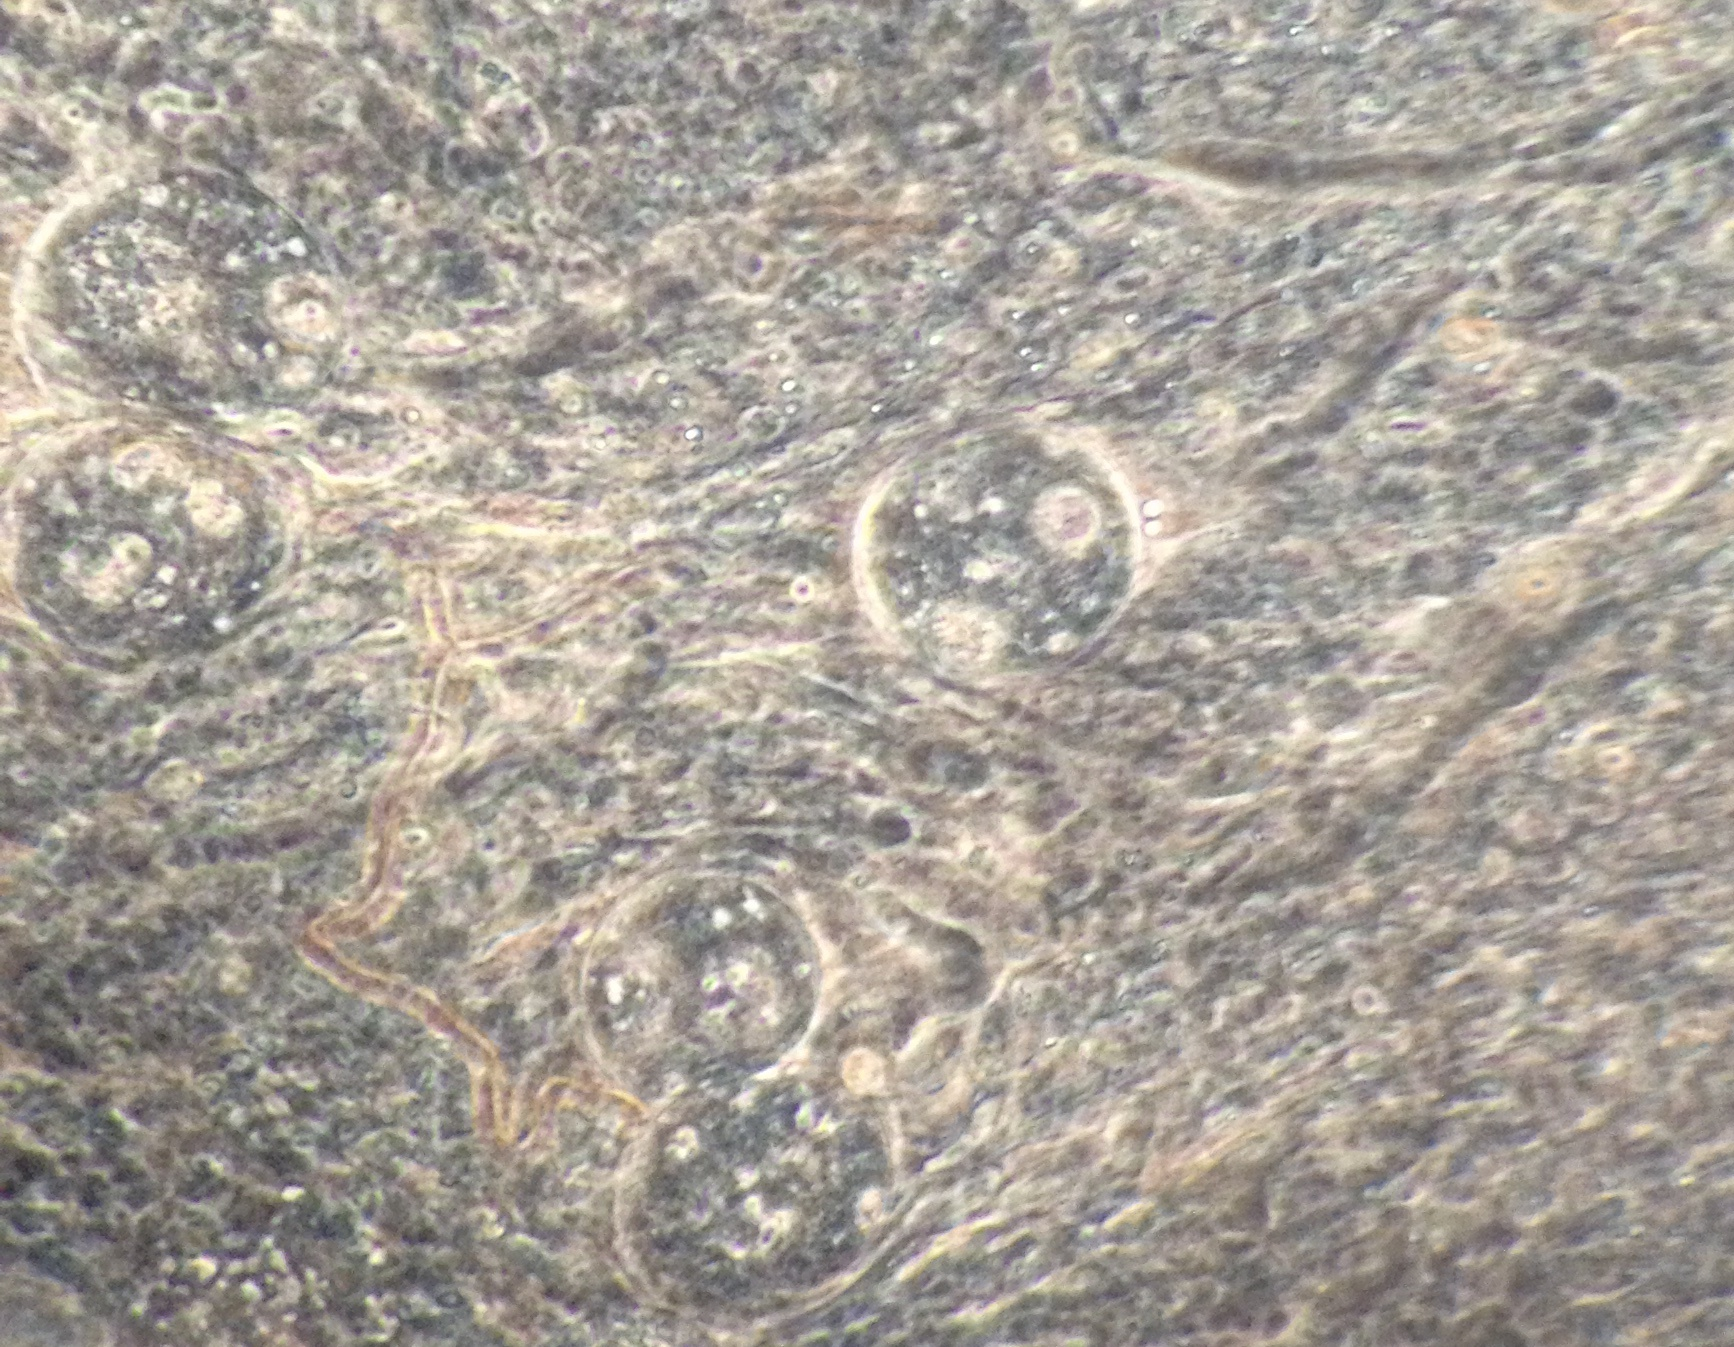 P. chabaudi  oocysts embedded in the midgut lining of  Anopheles stephensi. (Credit: Charlotte Repton)